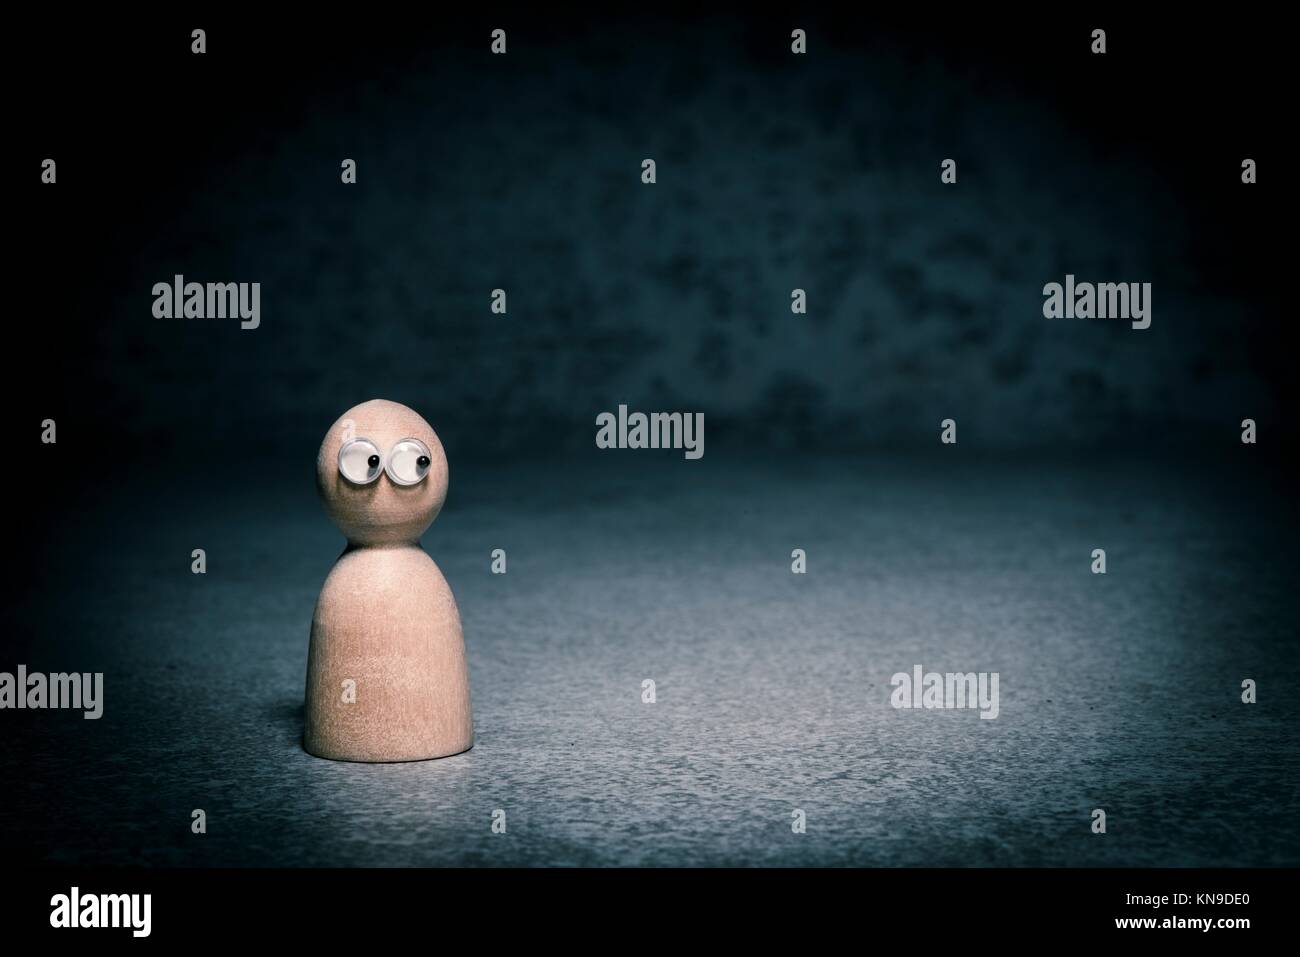 Symbol Of Loneliness And Depression Little Figure Alone In Darkness Stock Photo Alamy